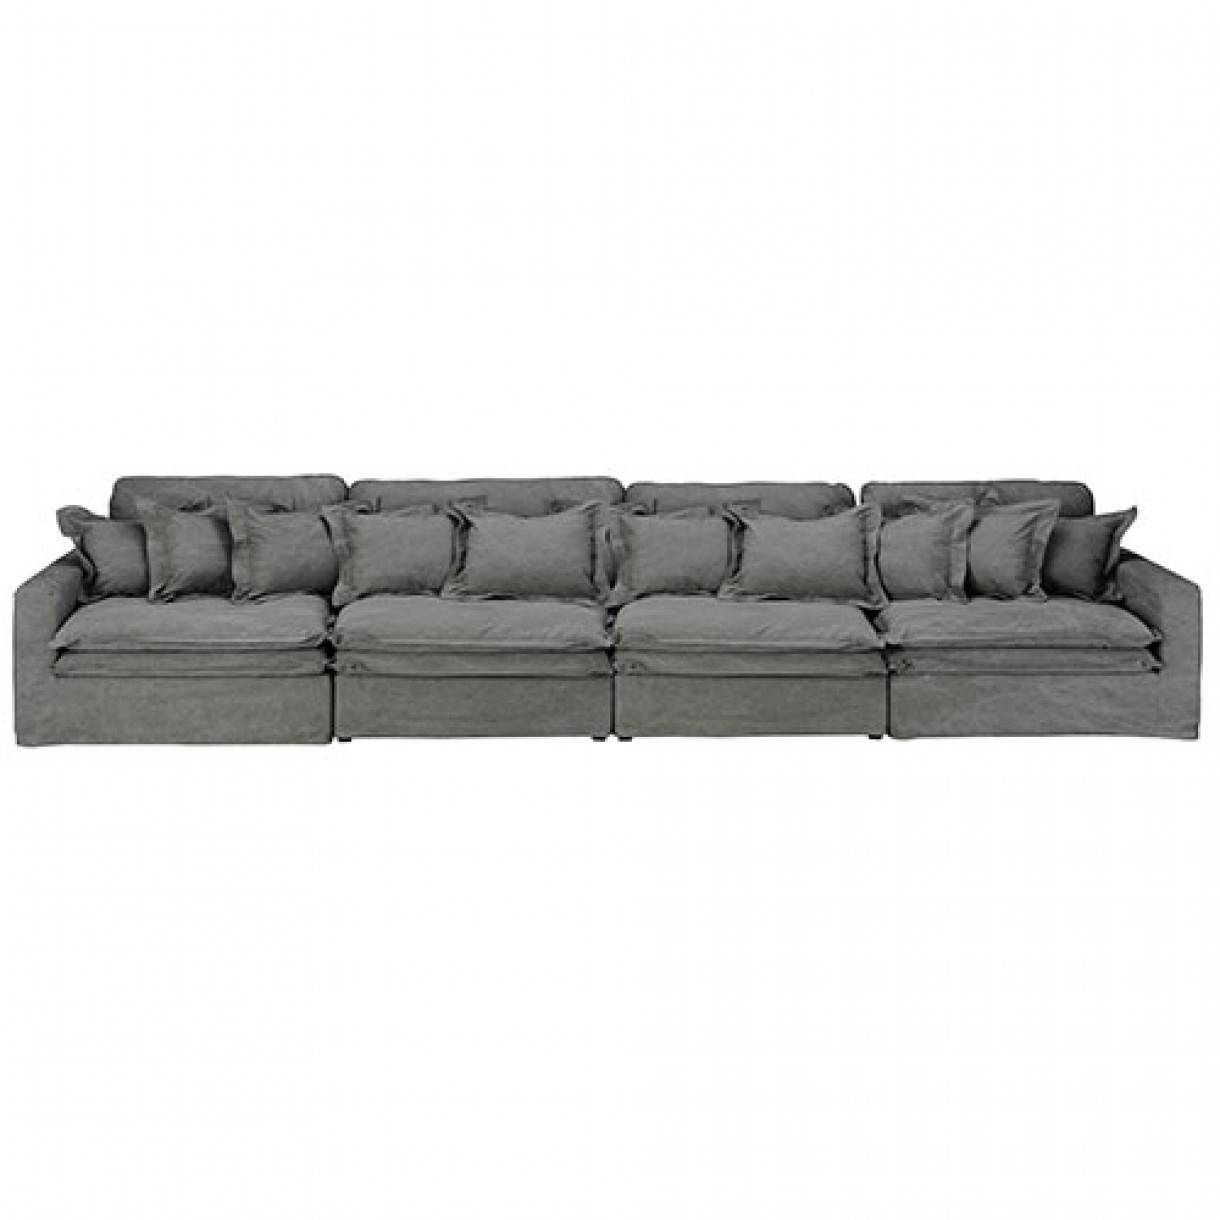 Buy Fabric Lounges Online | Upholstery | Early Settler Furniture in 4 Seater Couch (Image 6 of 30)